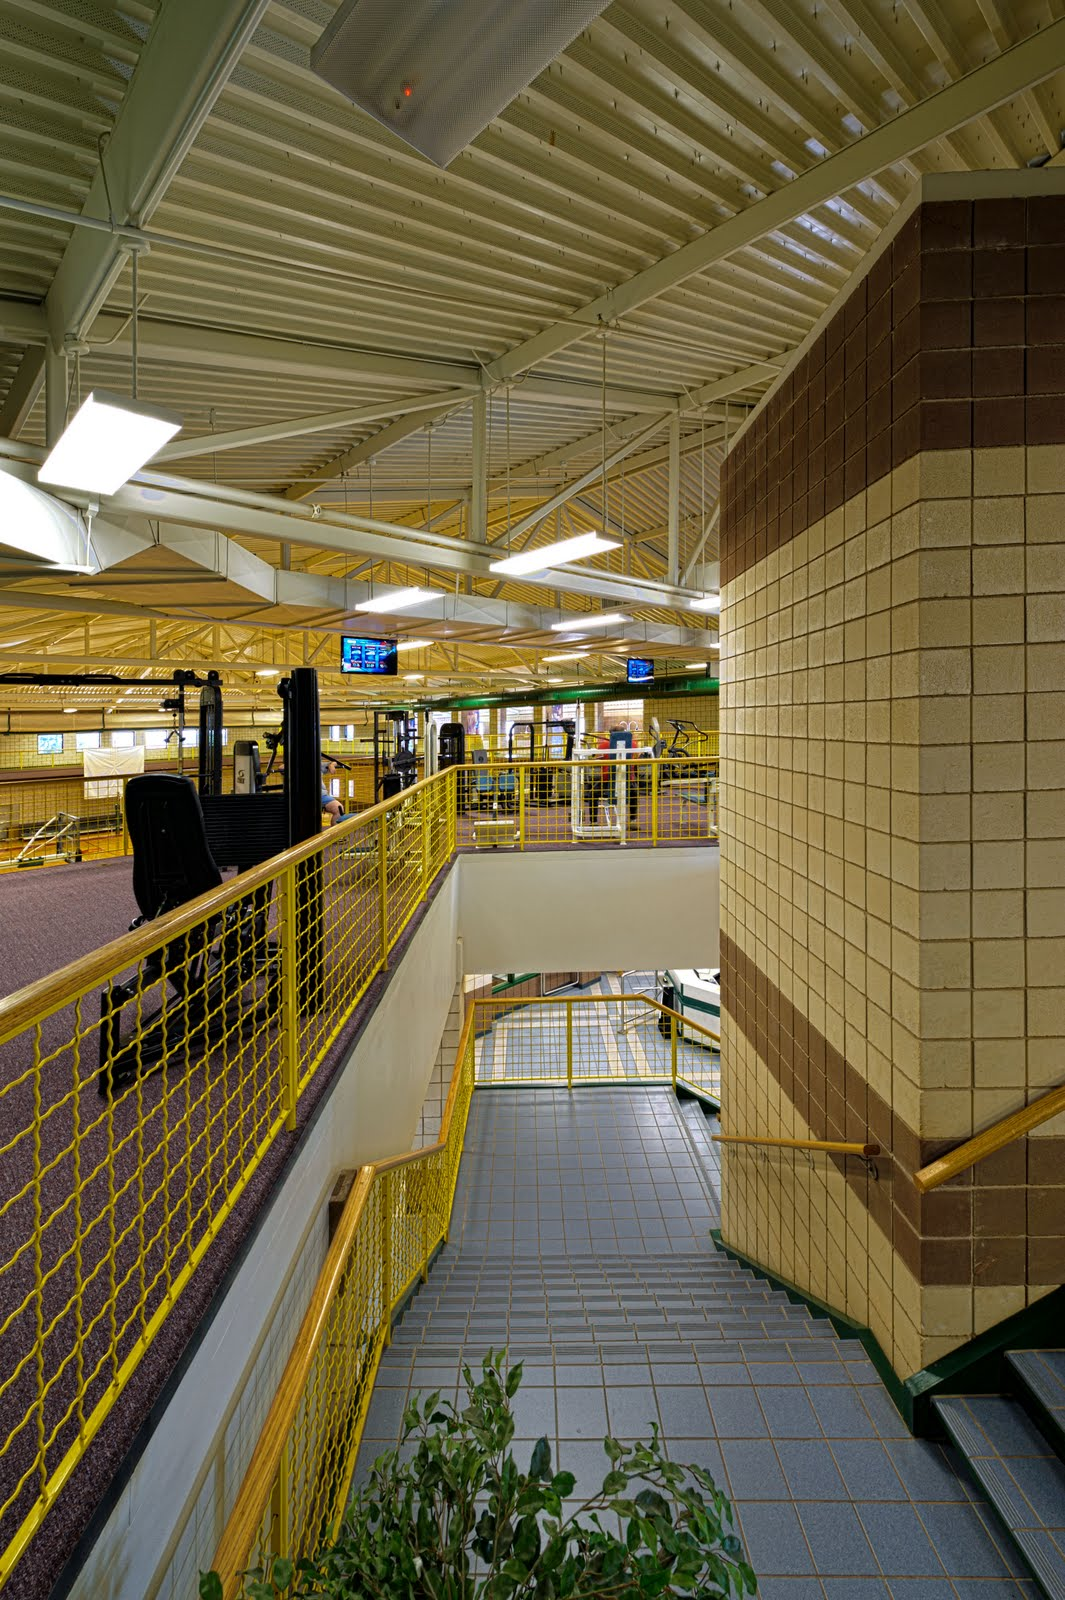 Architectural Engineers Inc: CADCO Architects-Engineers, Inc.: TSTC Student Center